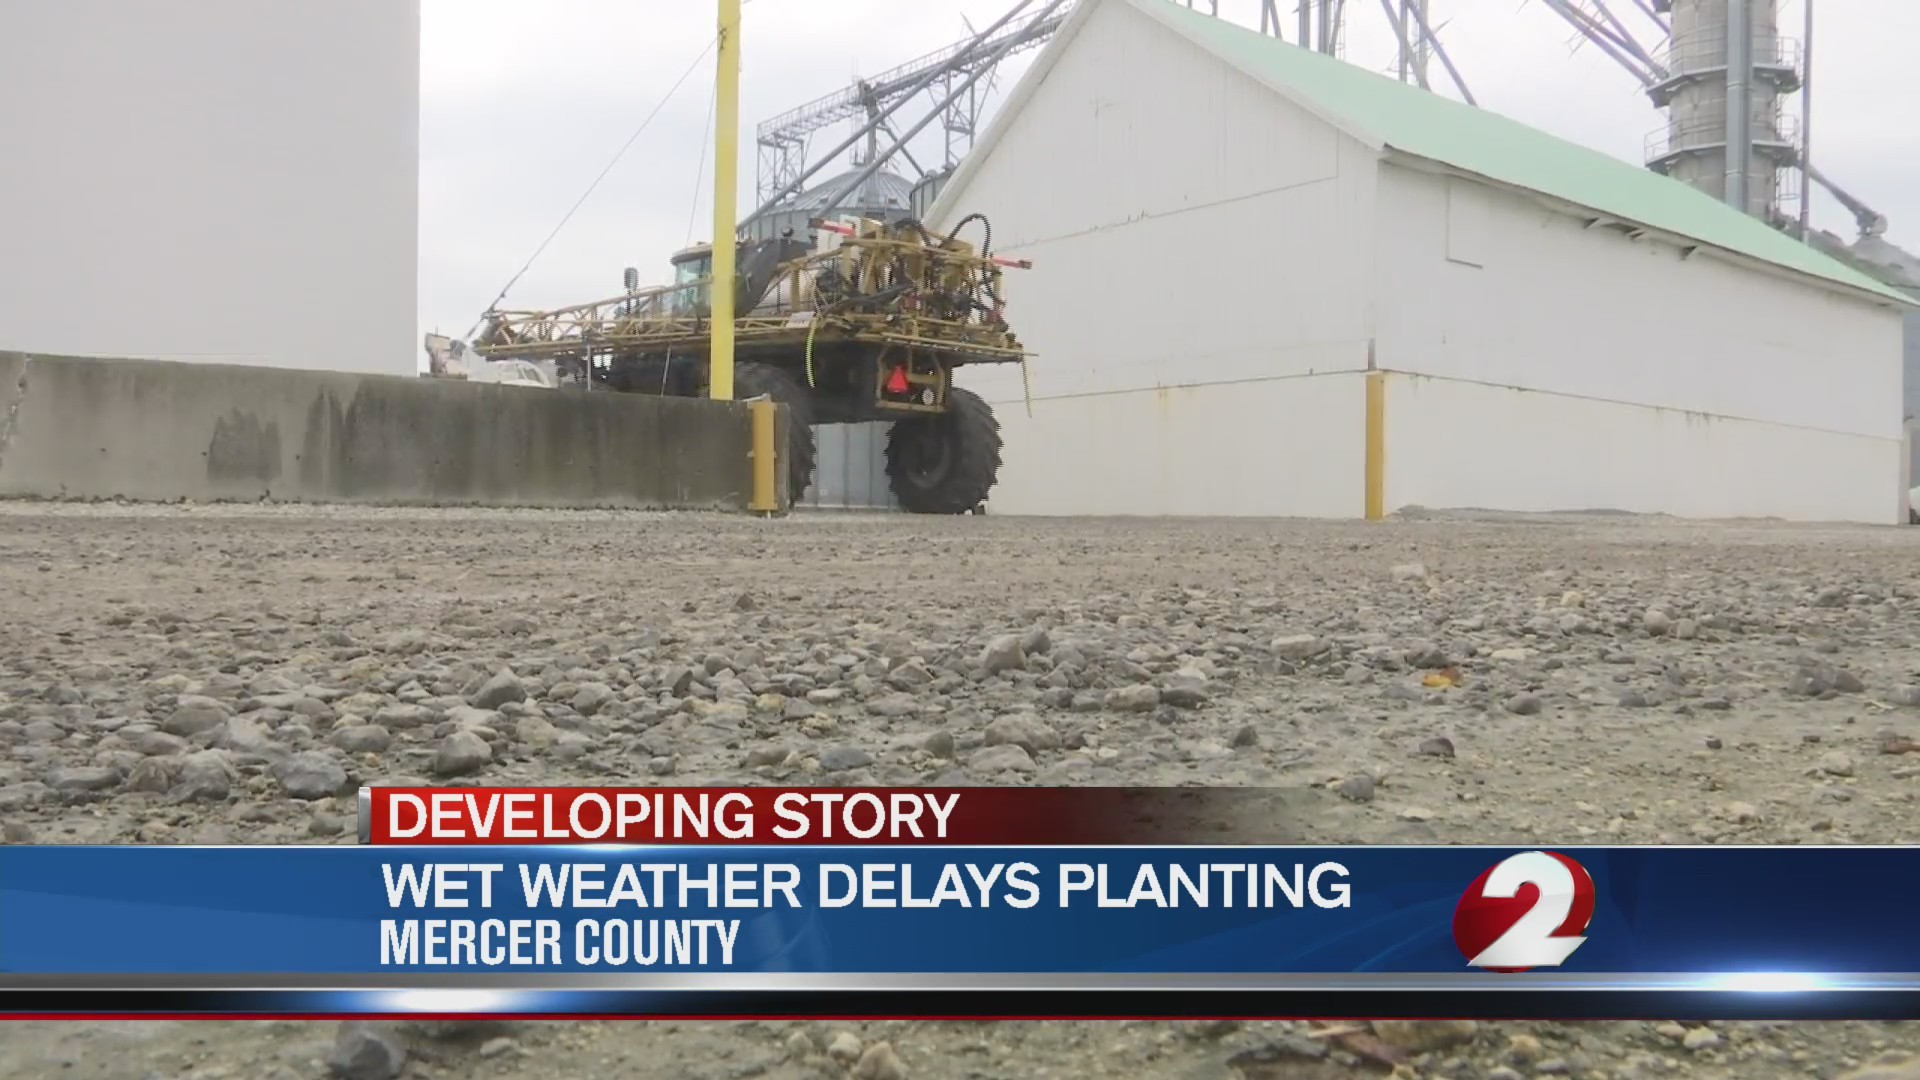 Wet weather delays planting